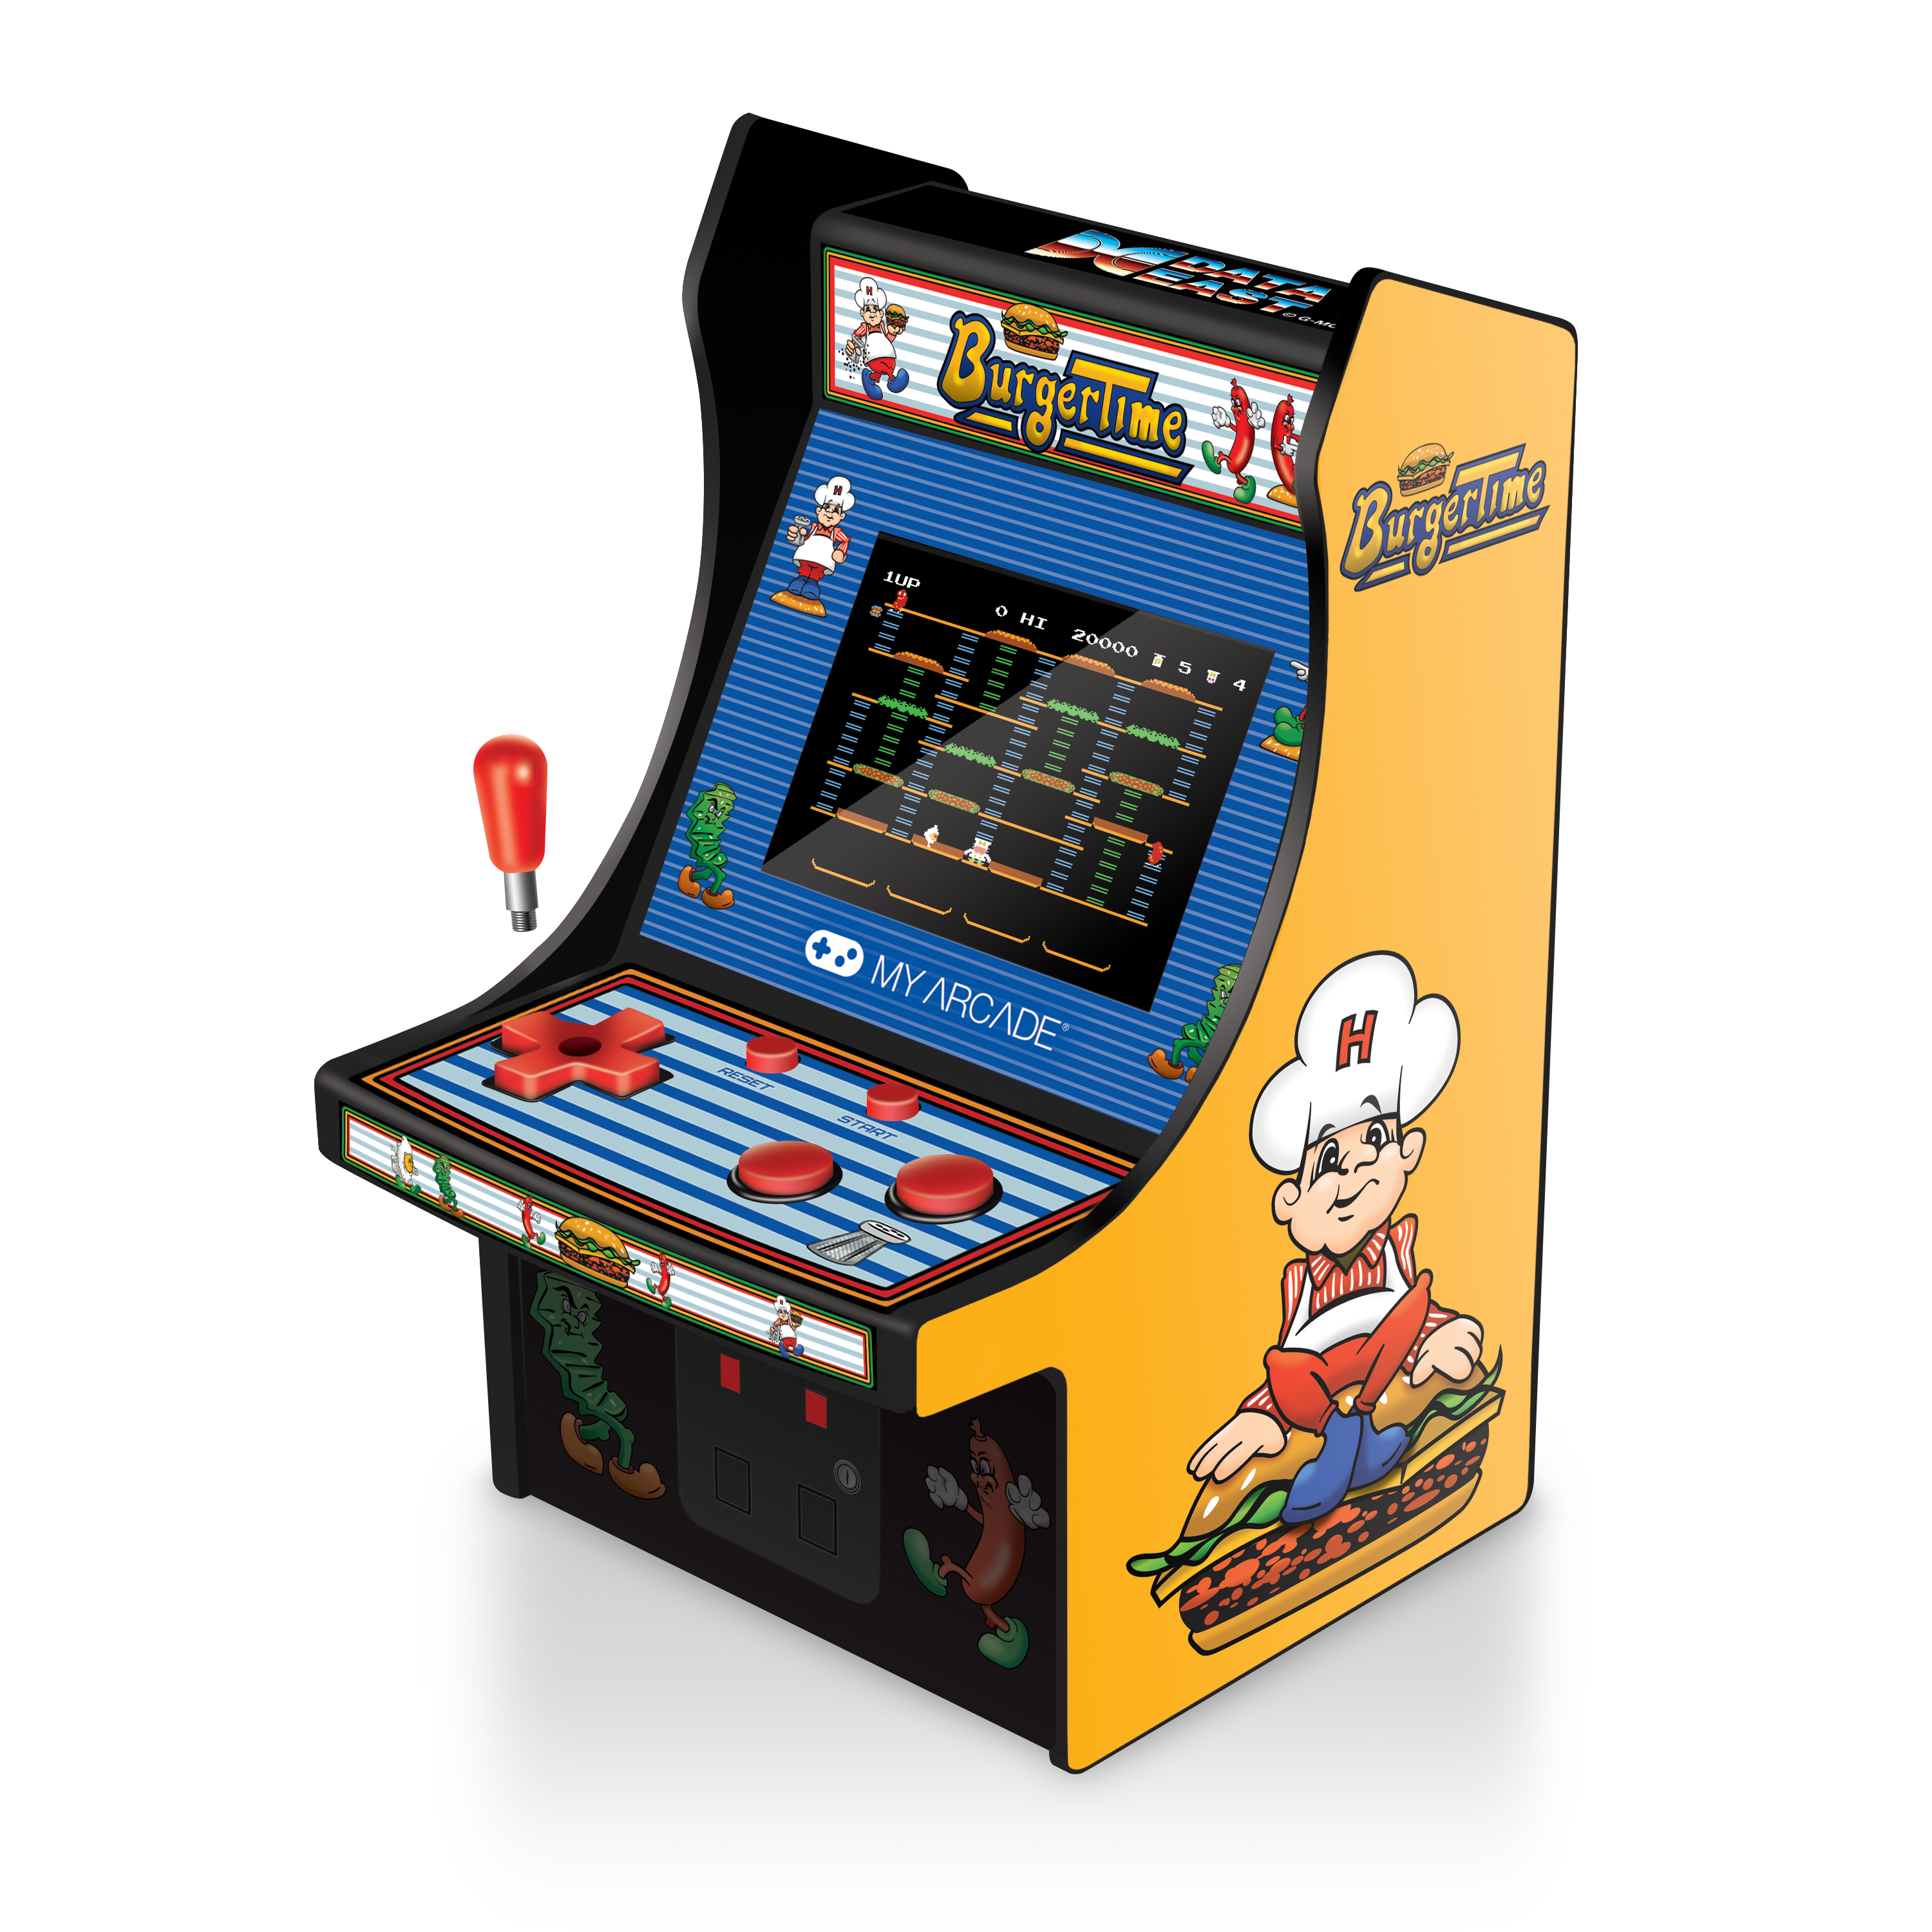 Wii U Arcade Machine : Toy fair my arcade continues classic cabinets with